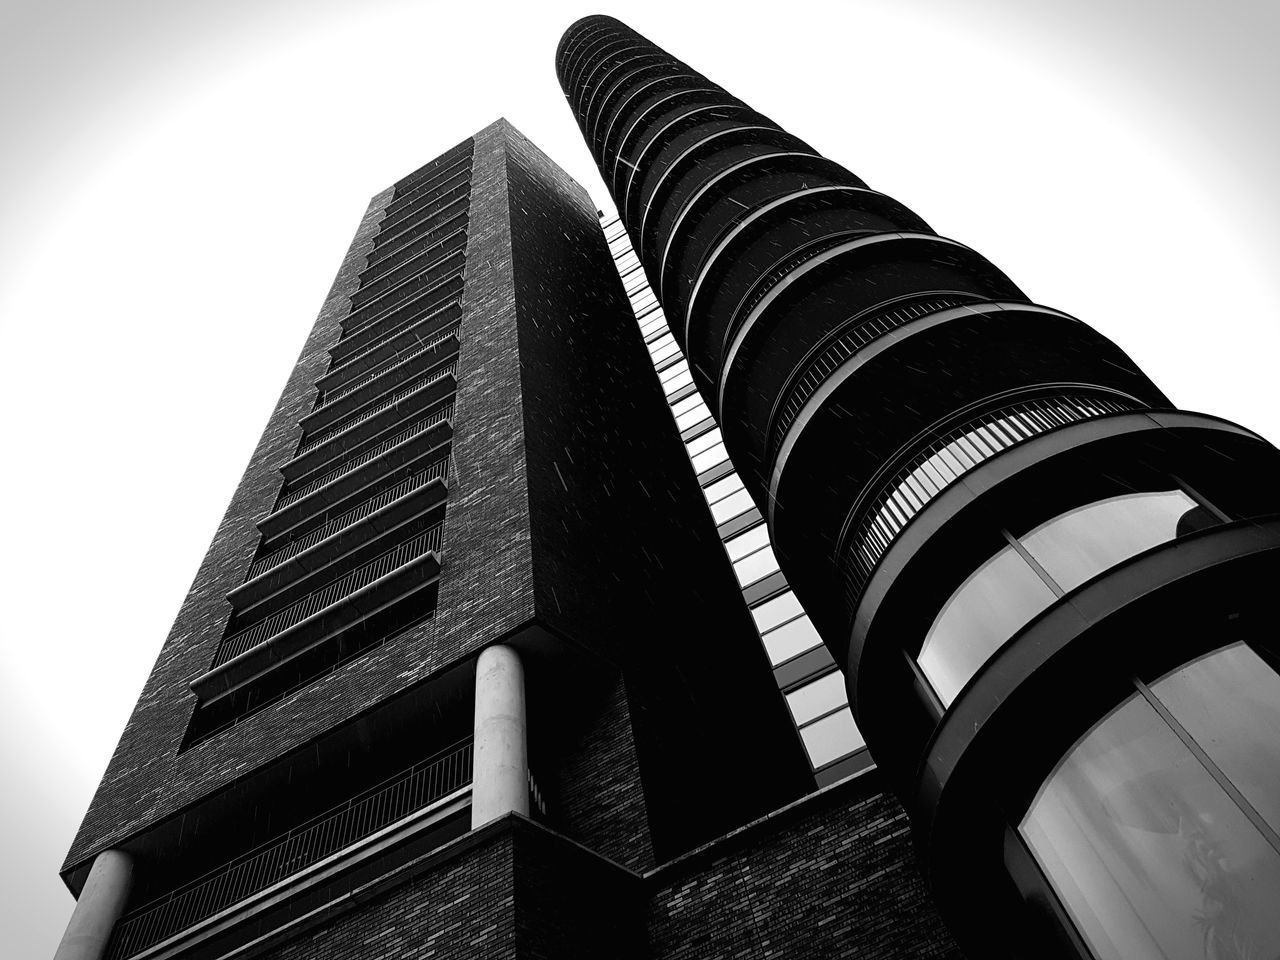 building exterior, built structure, low angle view, architecture, no people, building, sky, clear sky, city, office, nature, day, tall - high, outdoors, tower, modern, office building exterior, pattern, repetition, industry, skyscraper